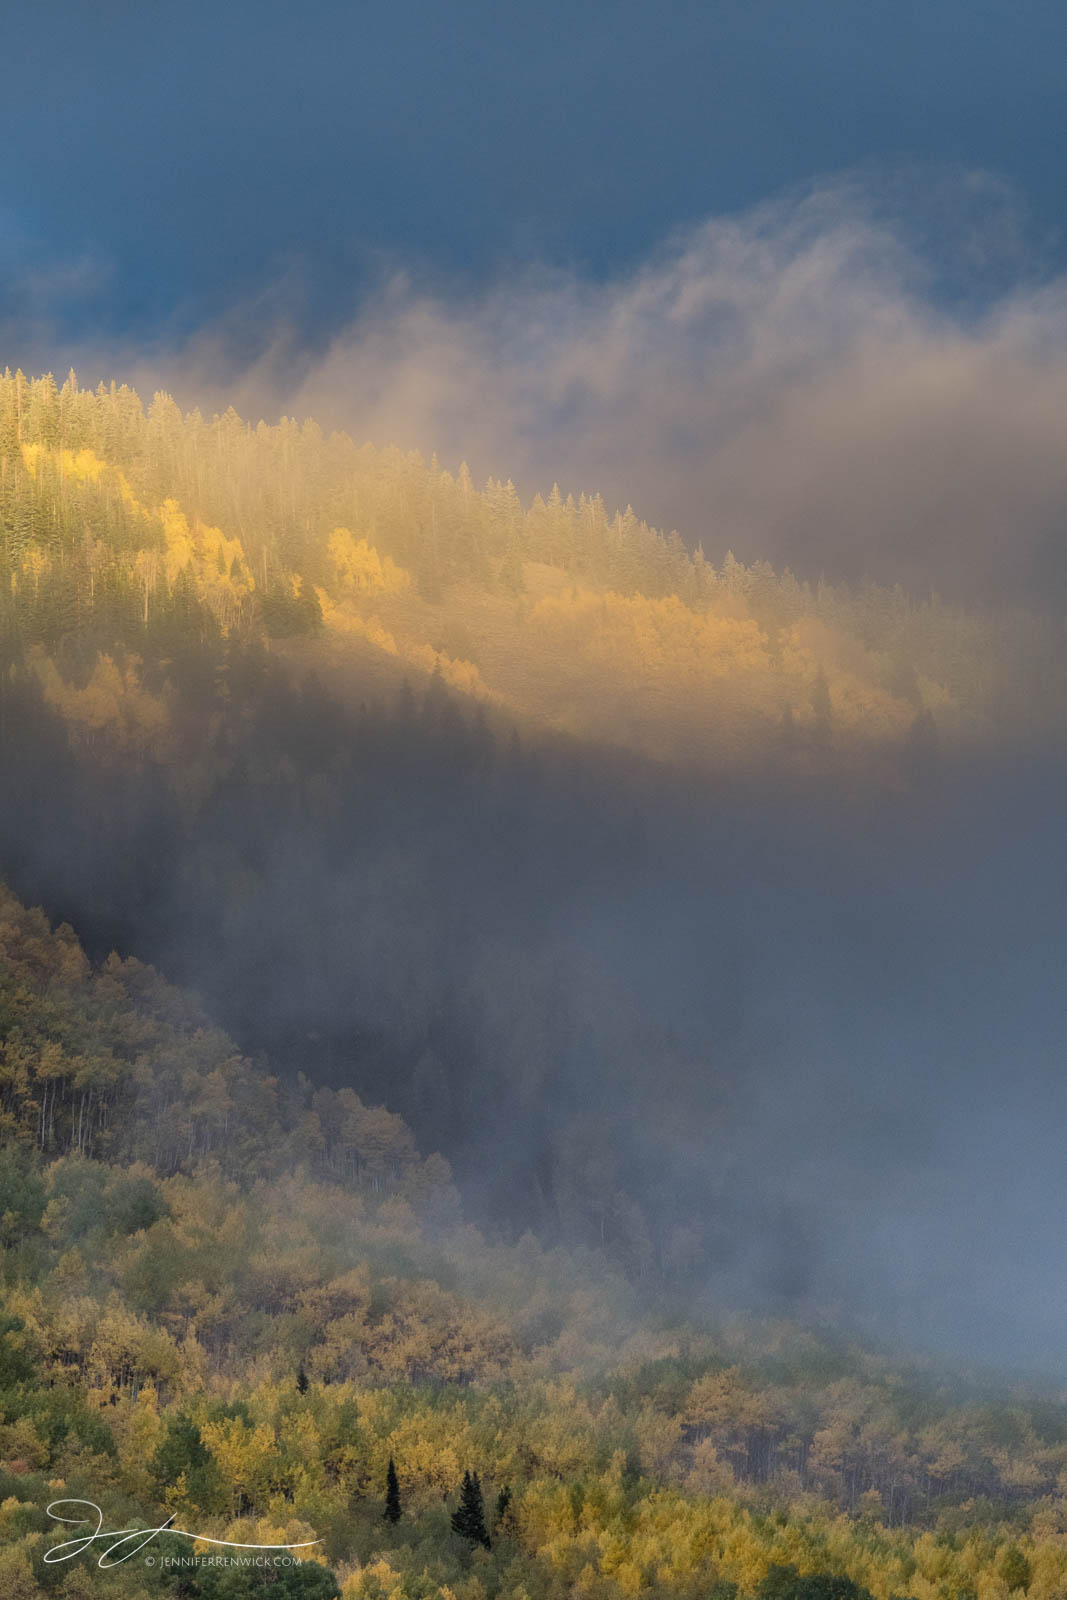 A hillside of aspen trees lights up during a clearing autumn storm.